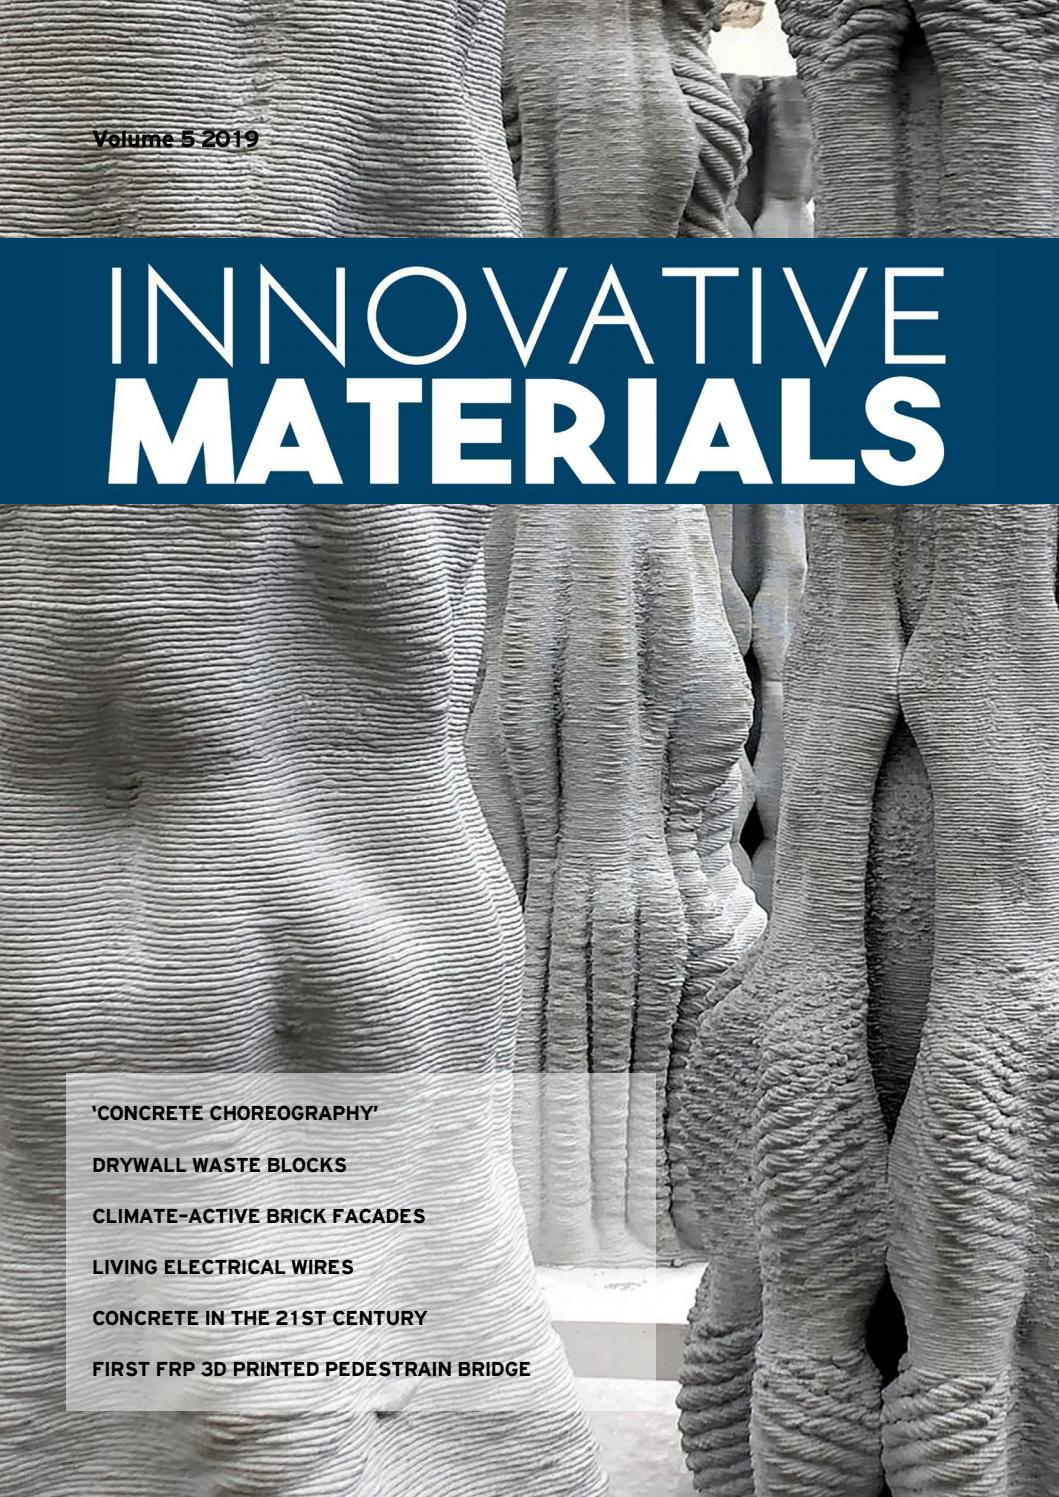 Innovative Materials edition 5 2019 by Innovatieve ... on